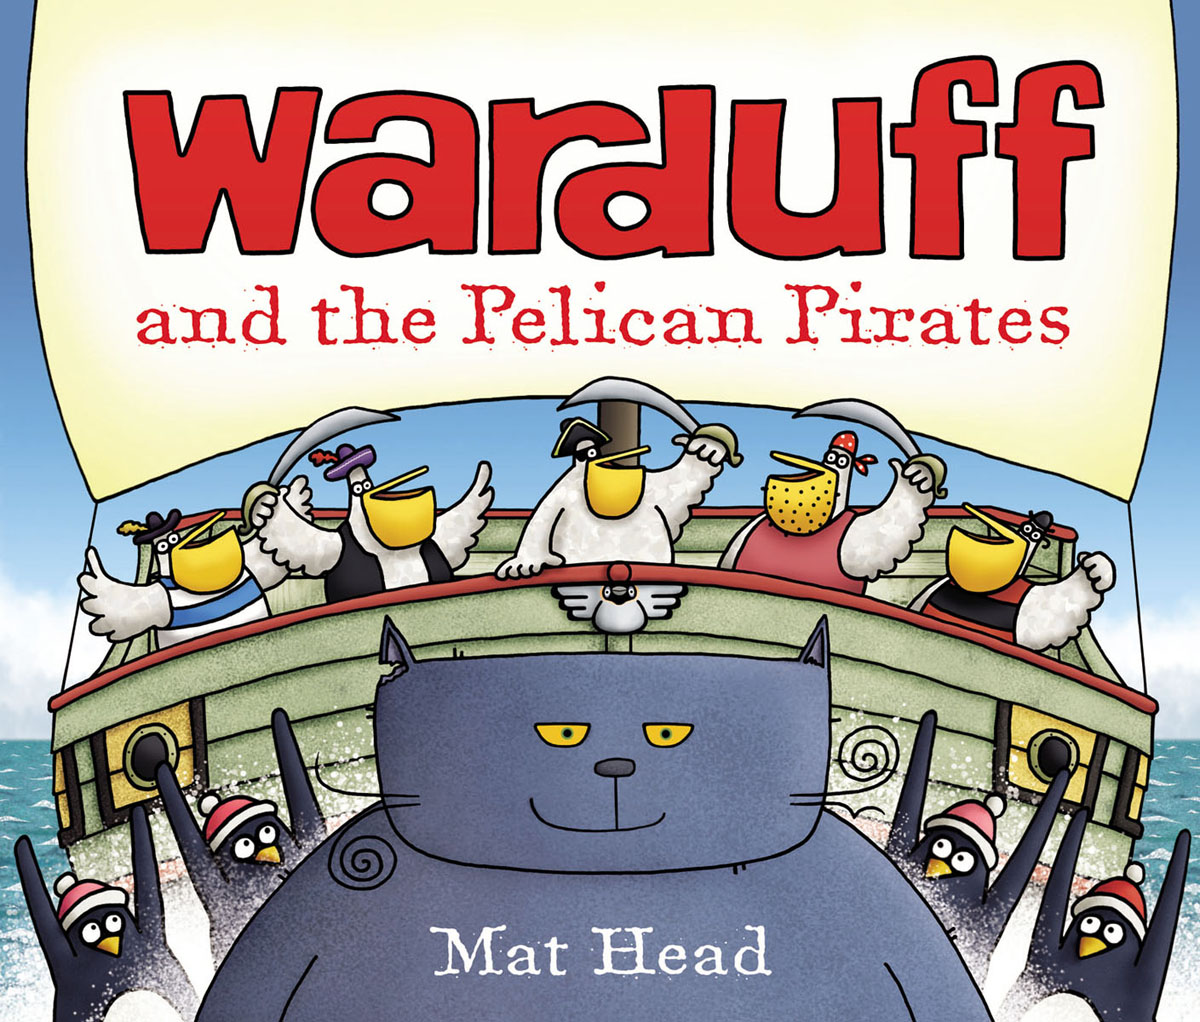 Warduff and the Pelican Pirates must i go down to the sea again